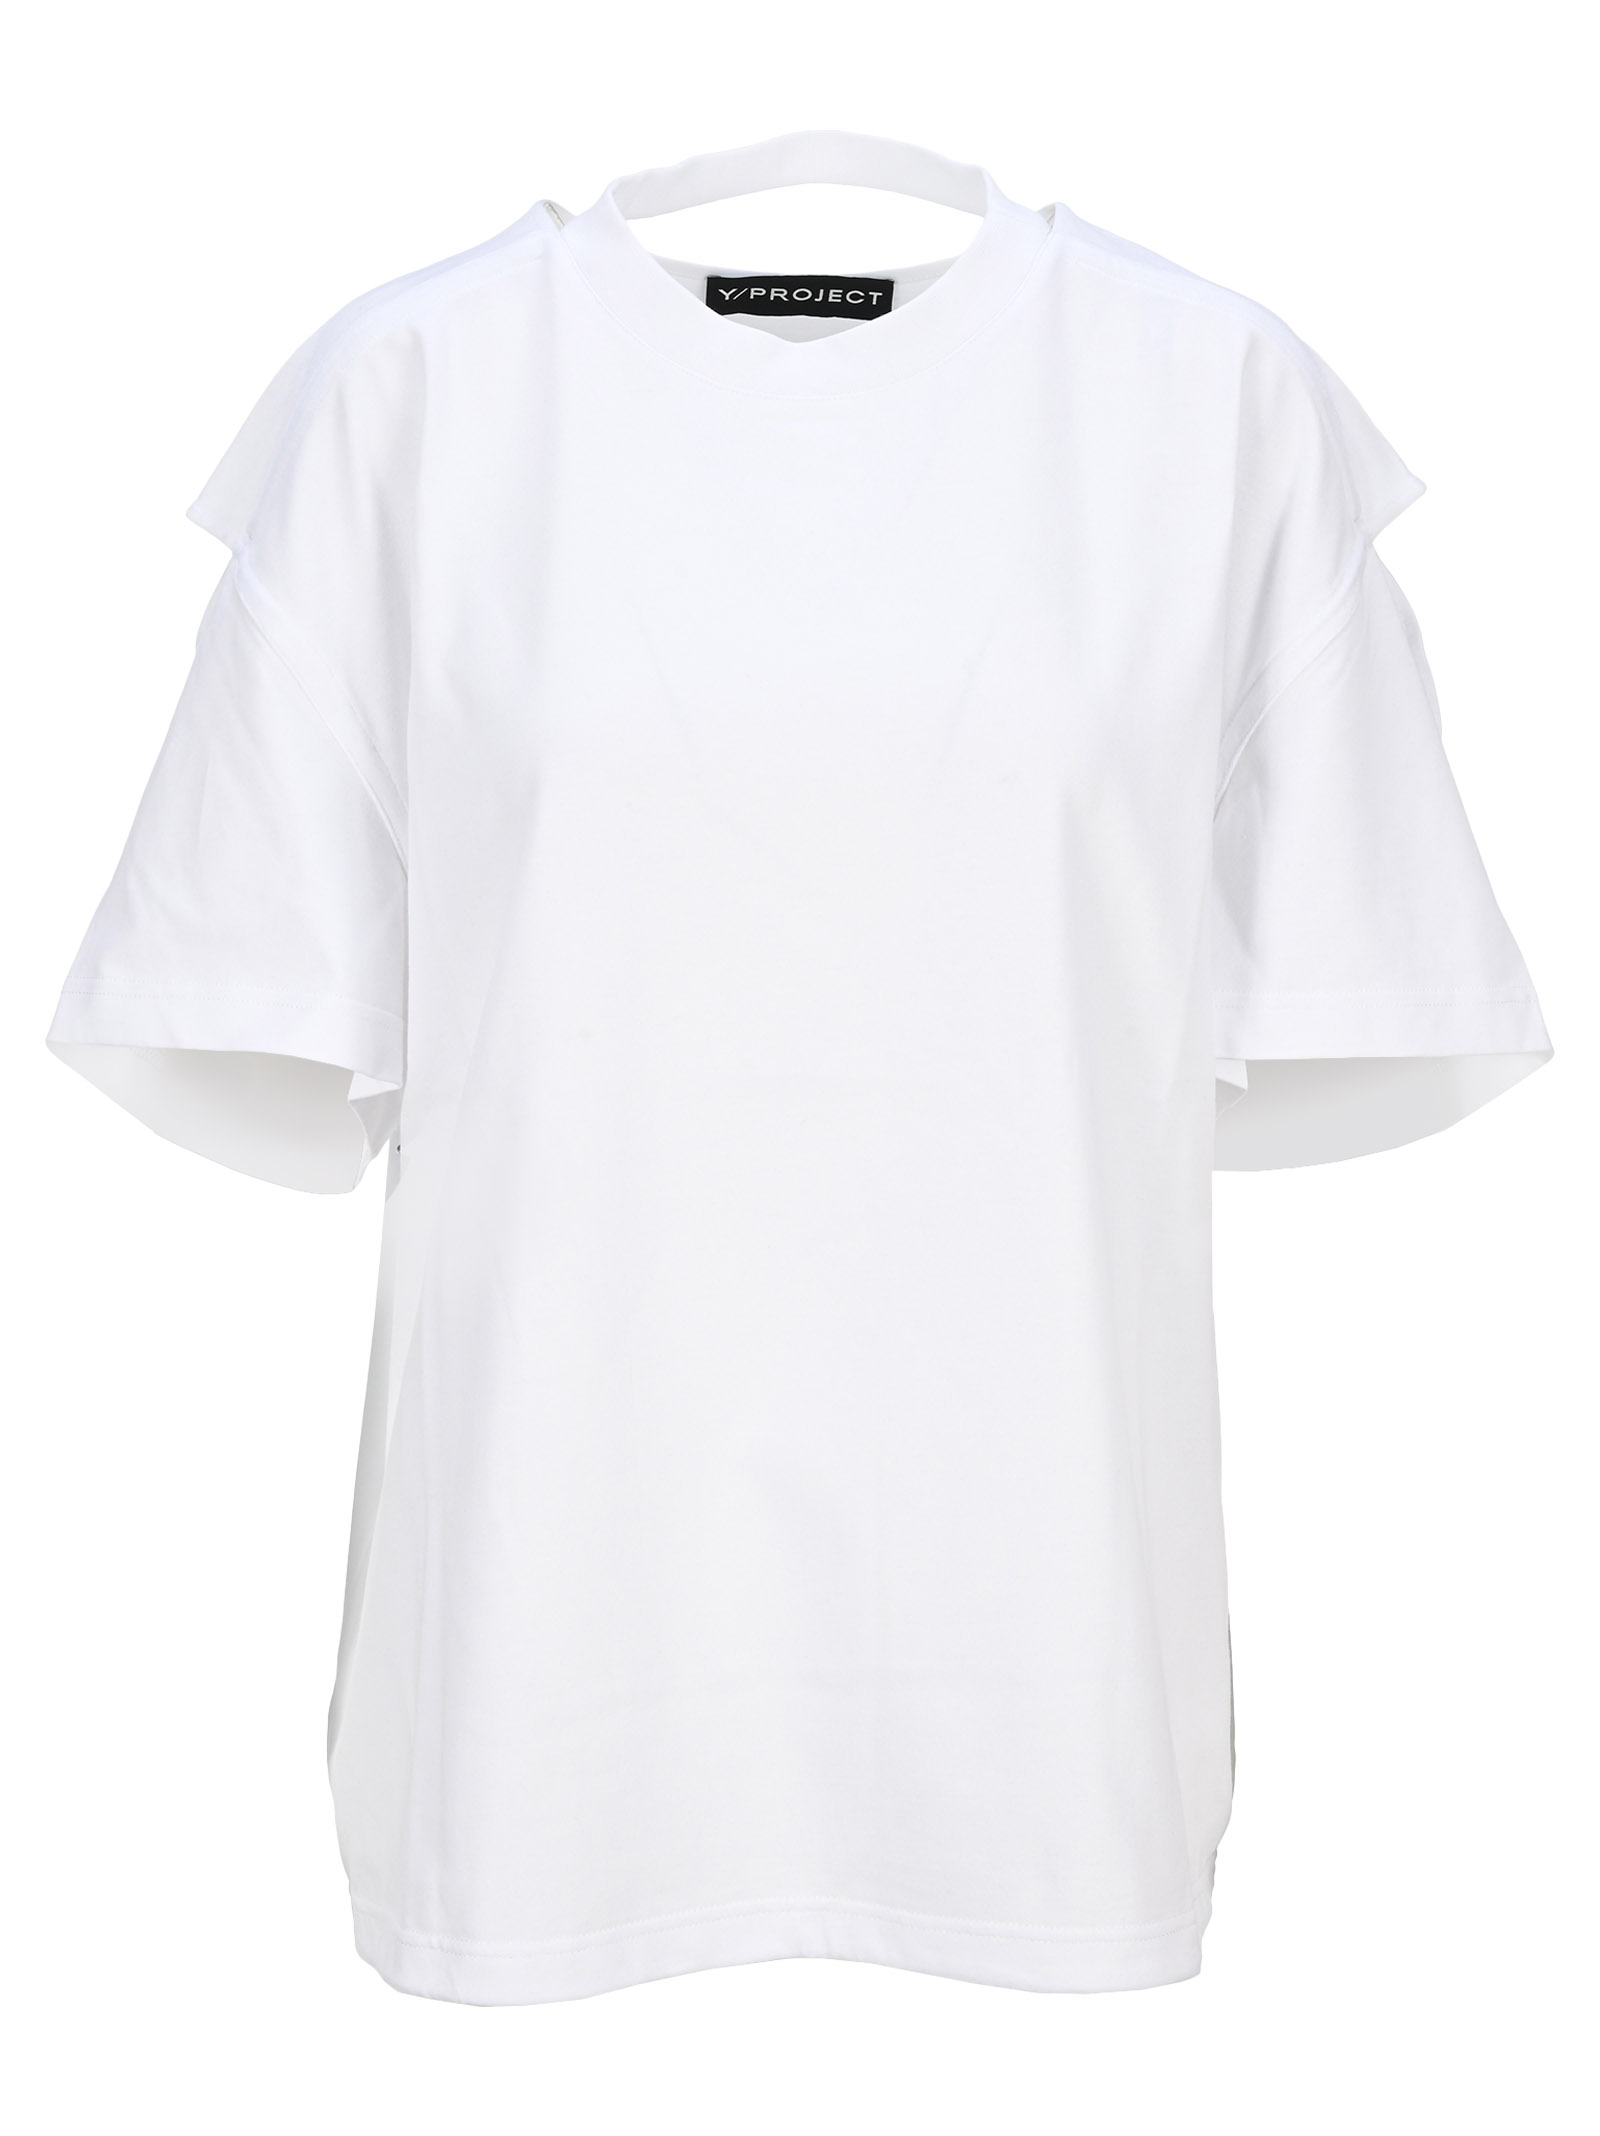 Y/project CONVERTIBLE T-SHIRT